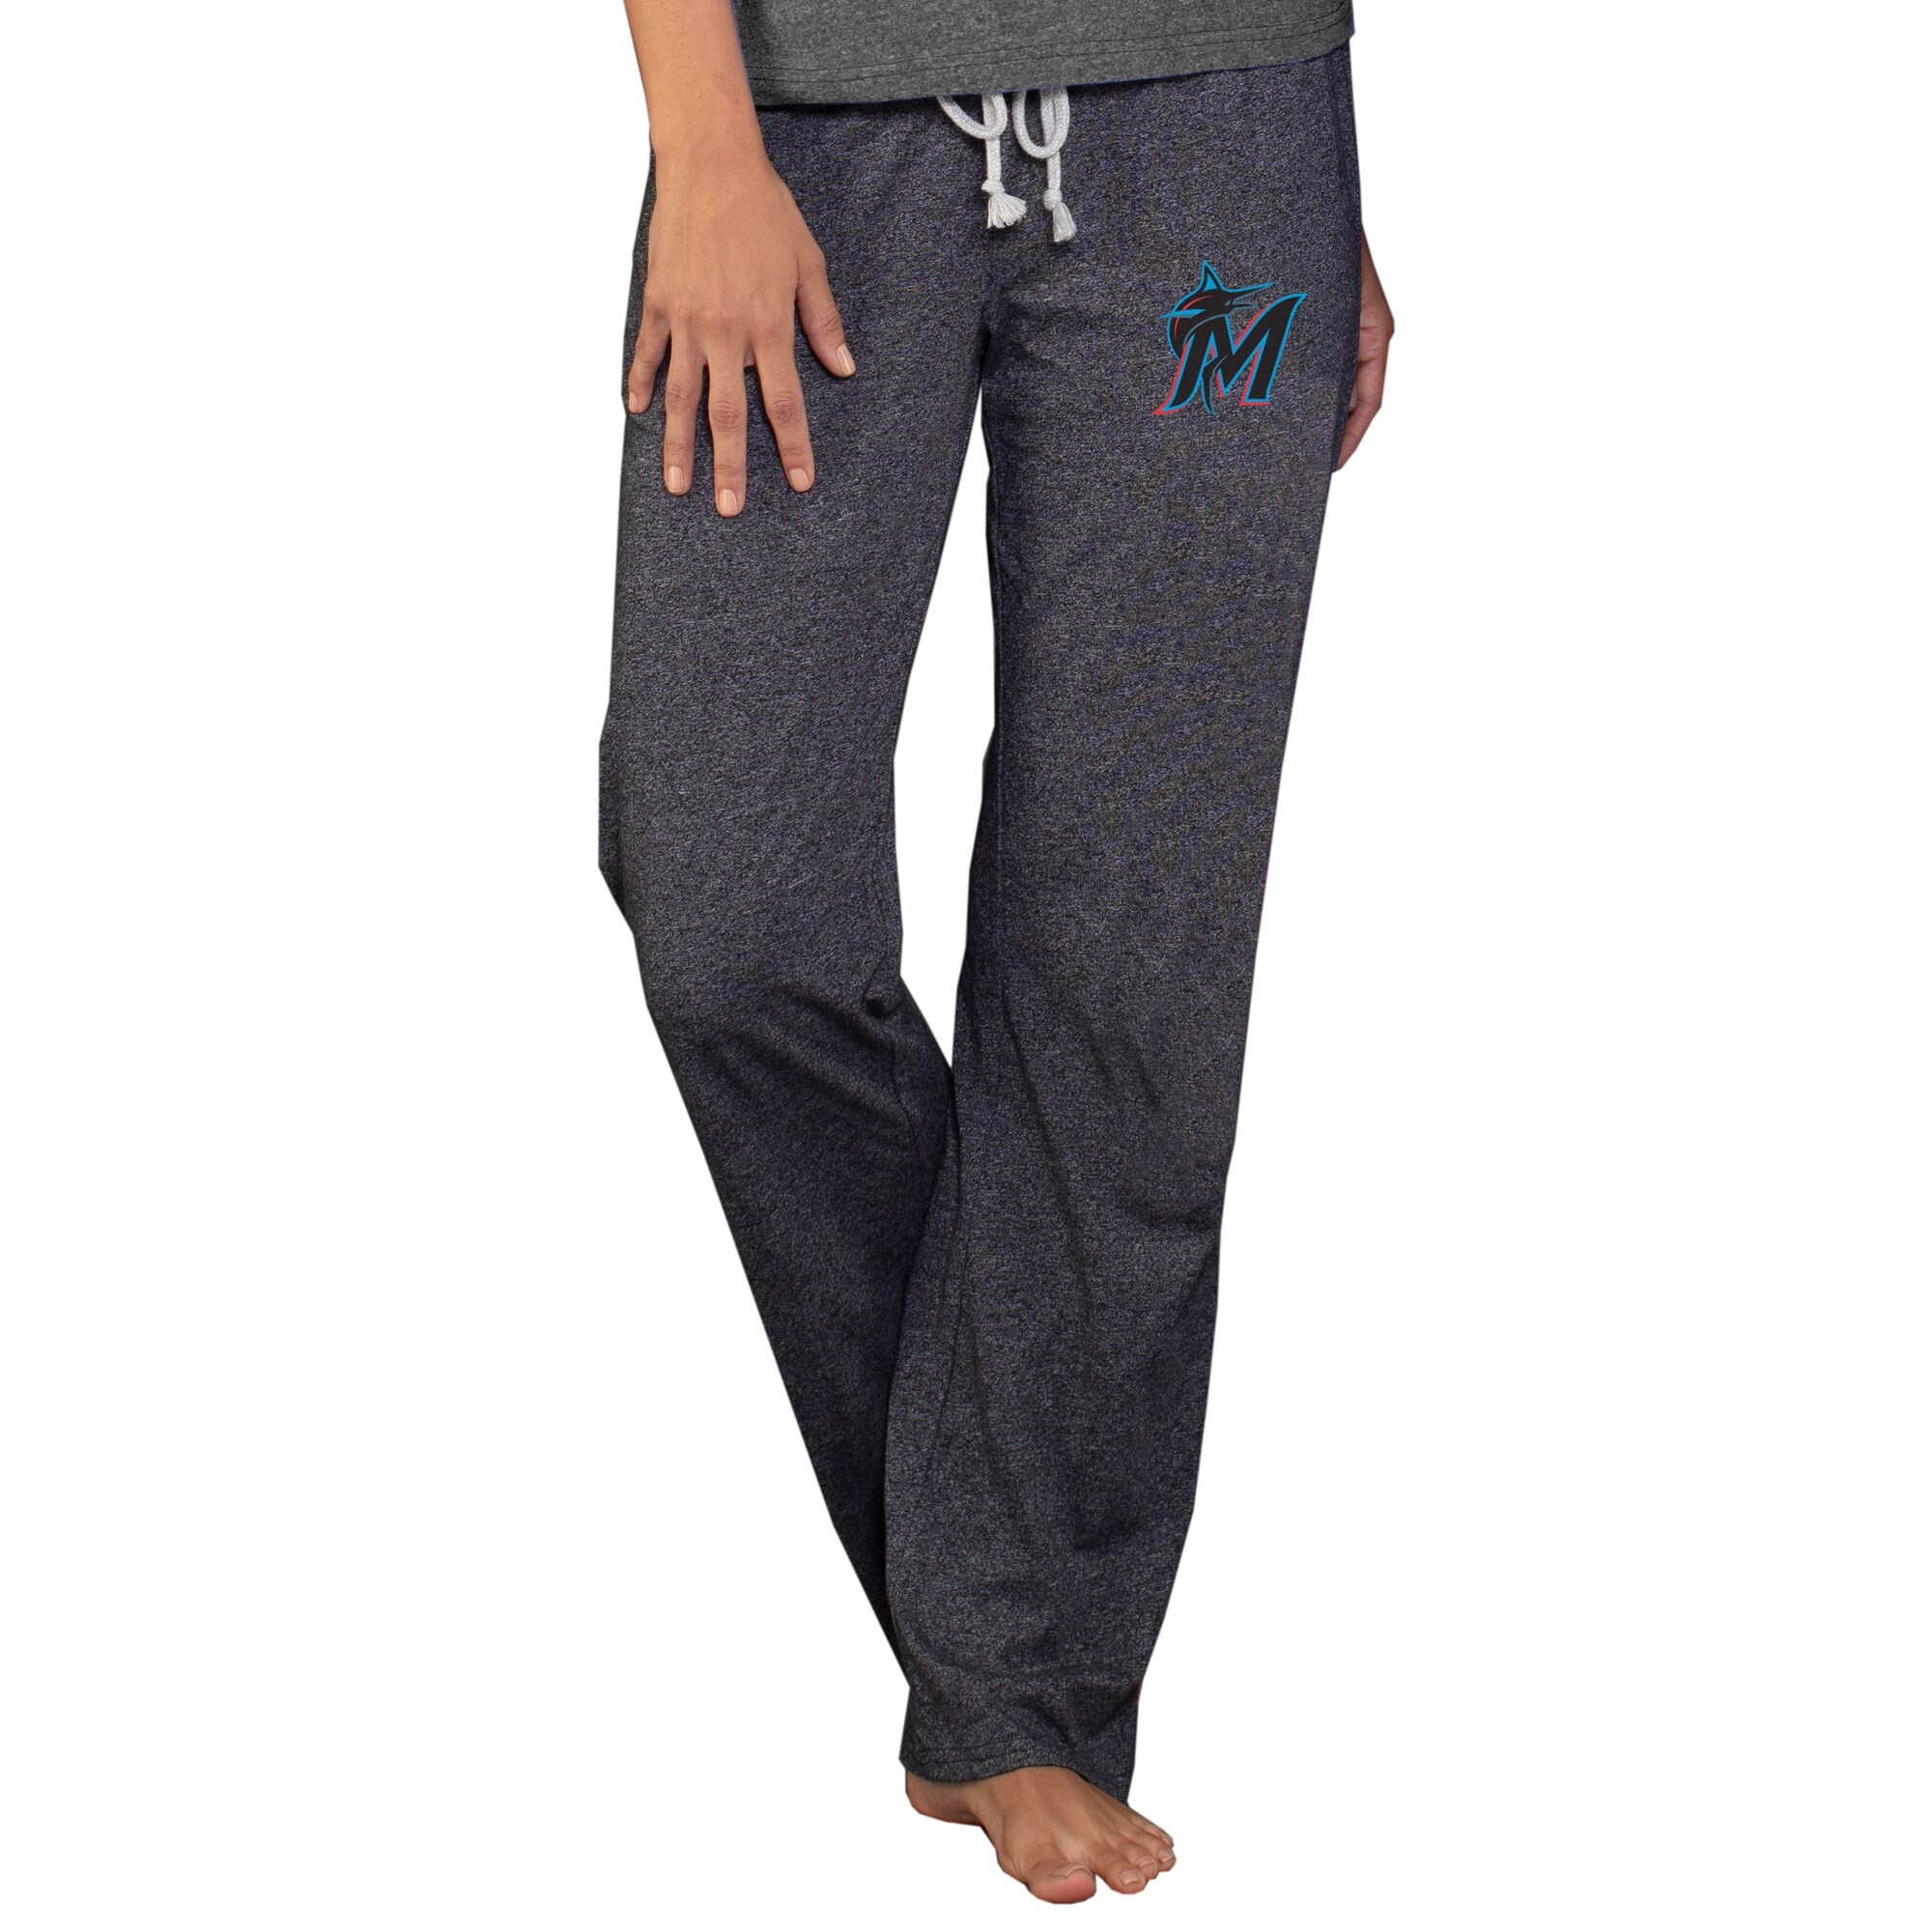 Miami Marlins Concepts Sport Women's Quest Knit Pants - Charcoal